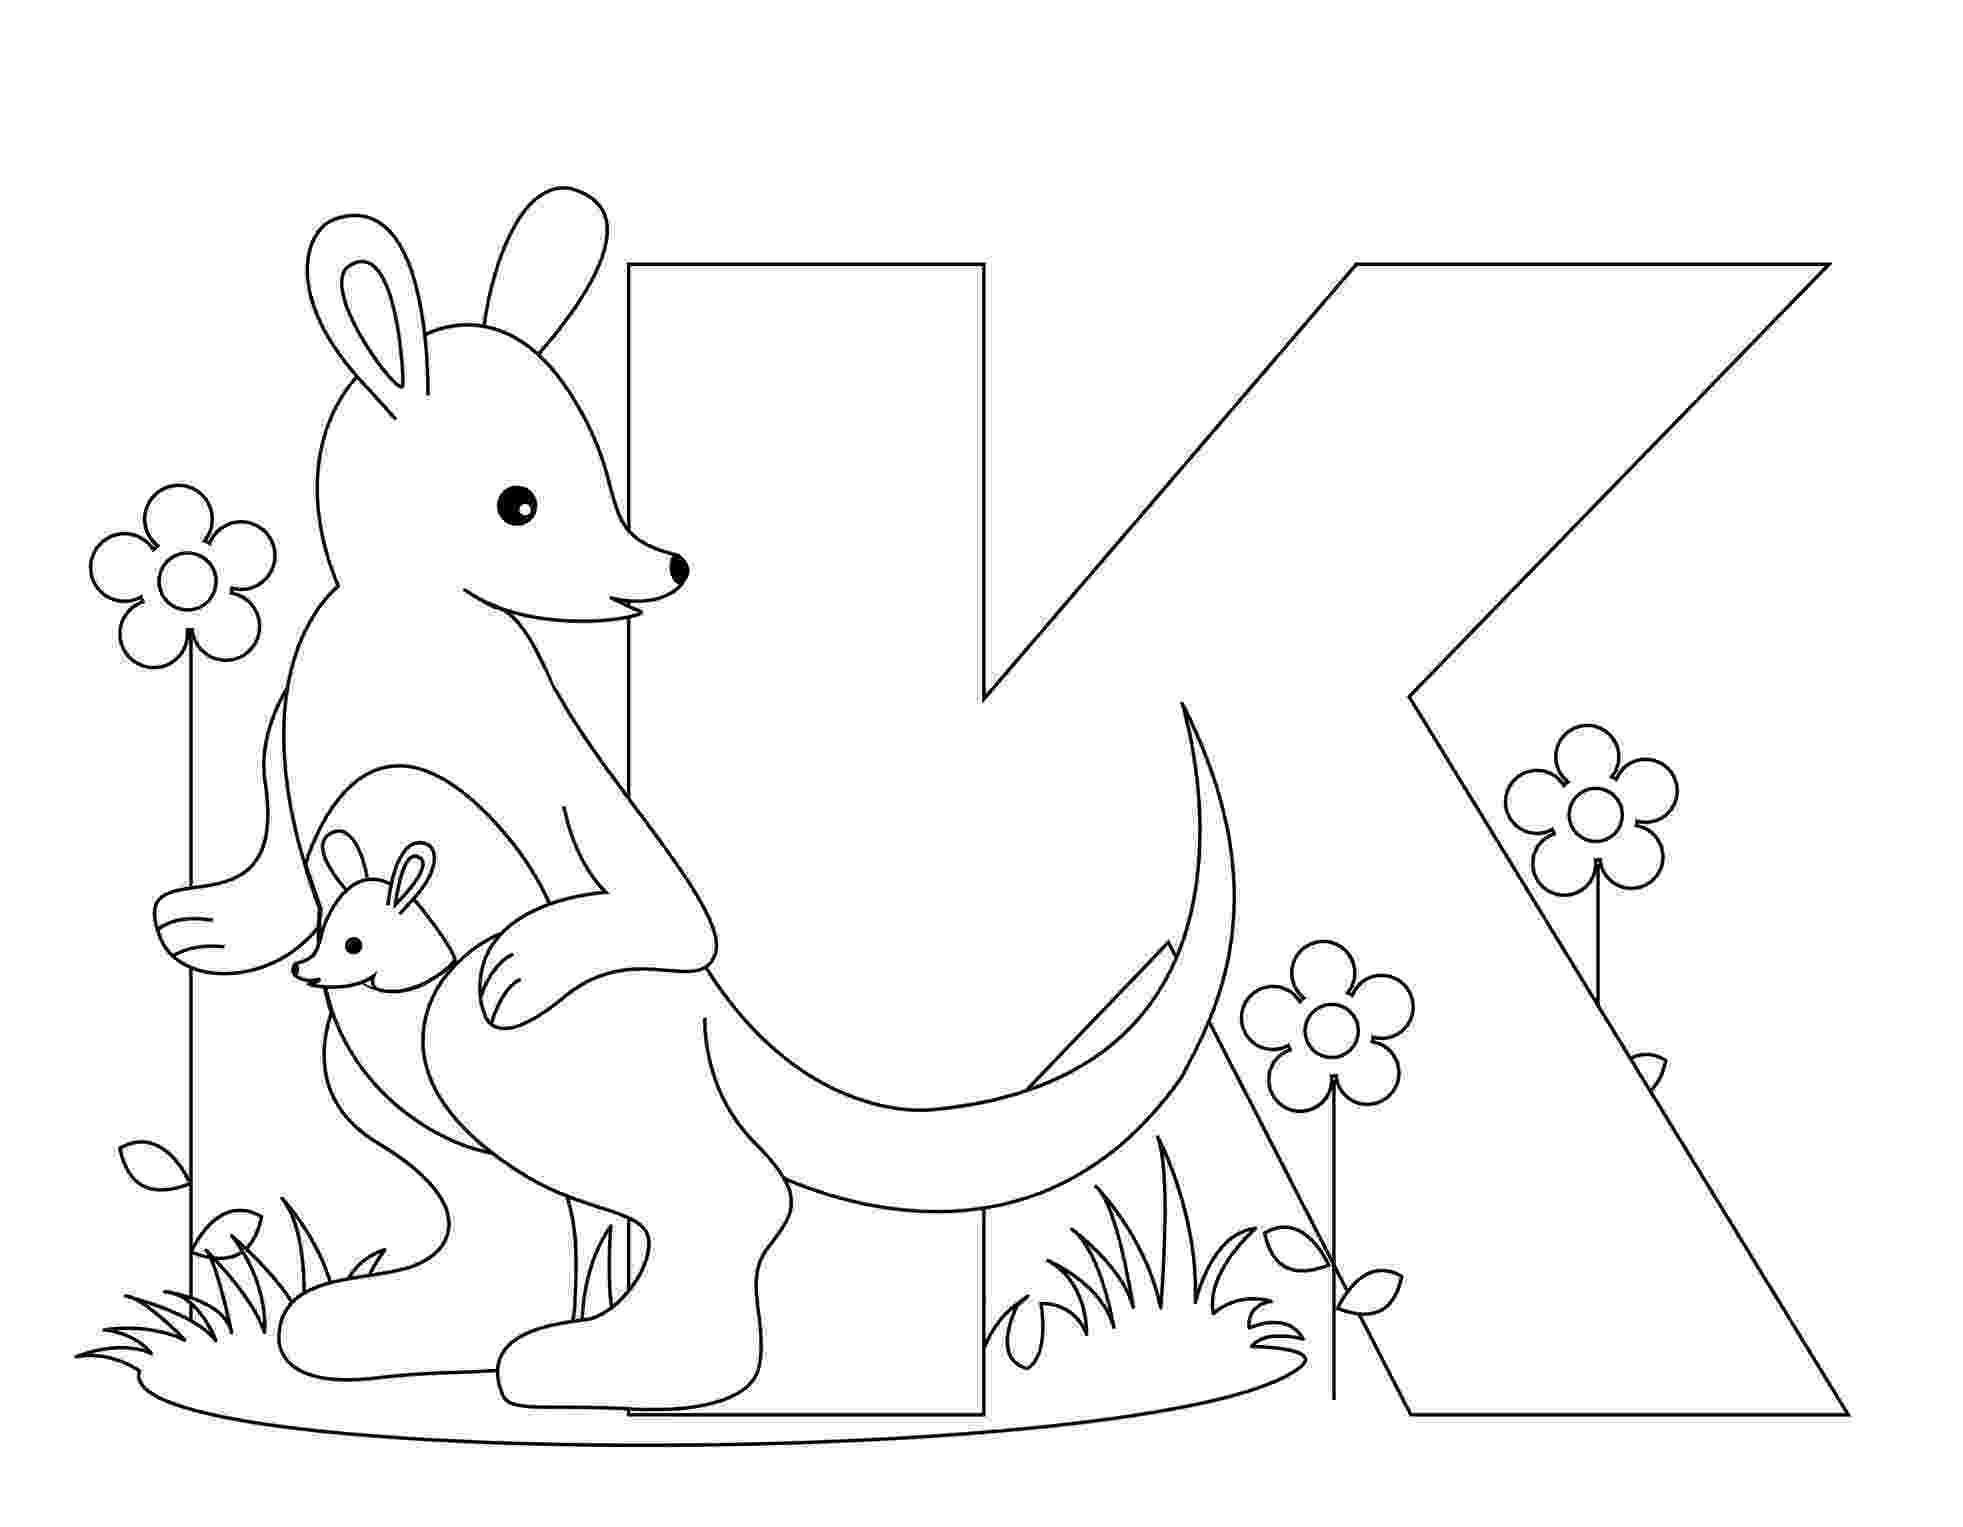 abc coloring book printable free printable alphabet coloring pages for kids best abc printable book coloring 1 1